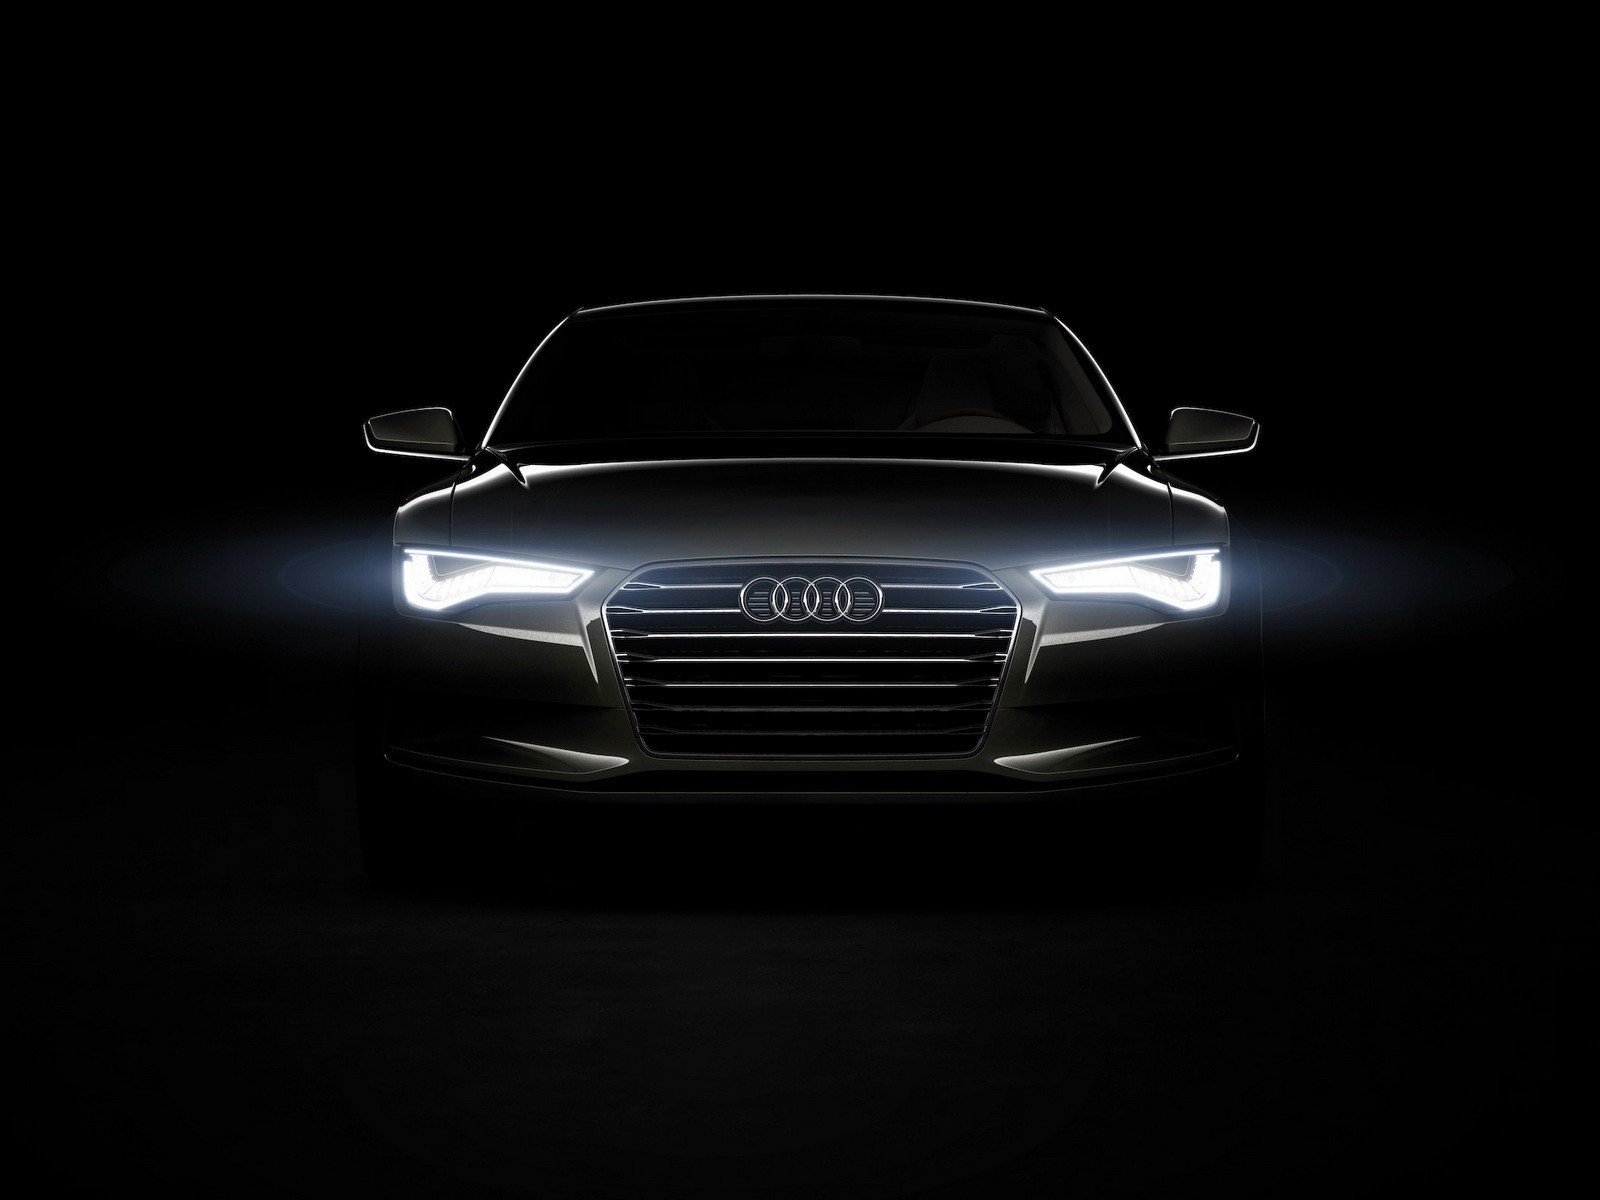 1600x1200 Cool HD Audi Wallpapers For Free Download